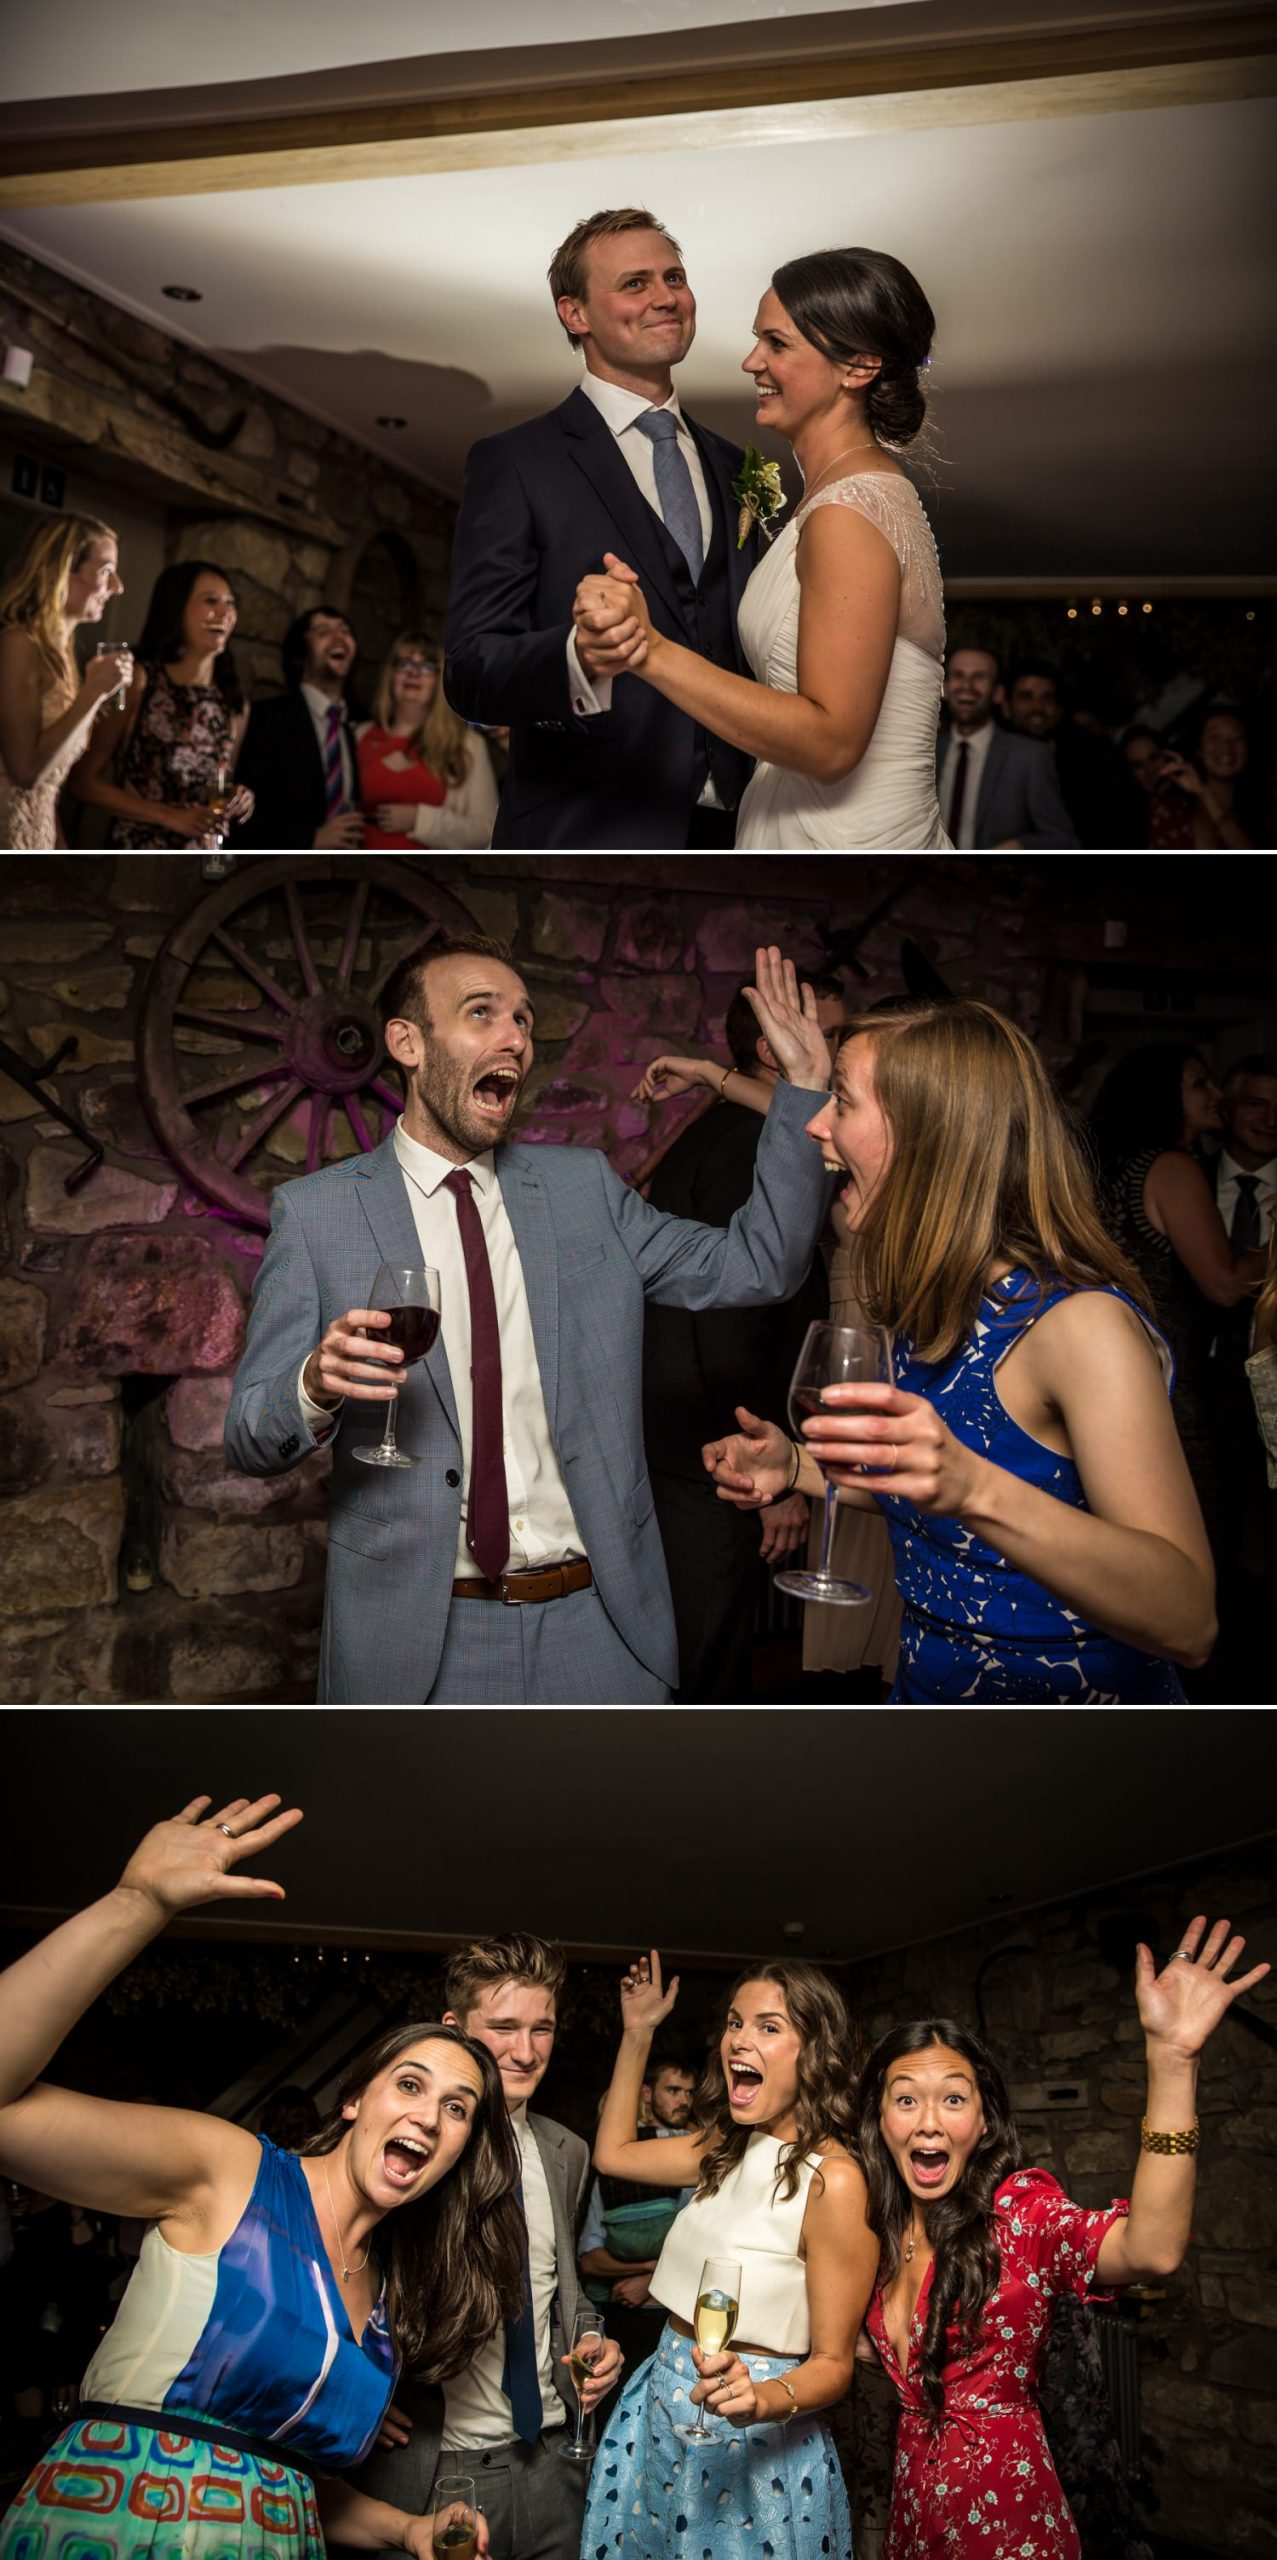 Wedding photographs of evening dancing at Tower Hill Barns, Wrexham, North Wales